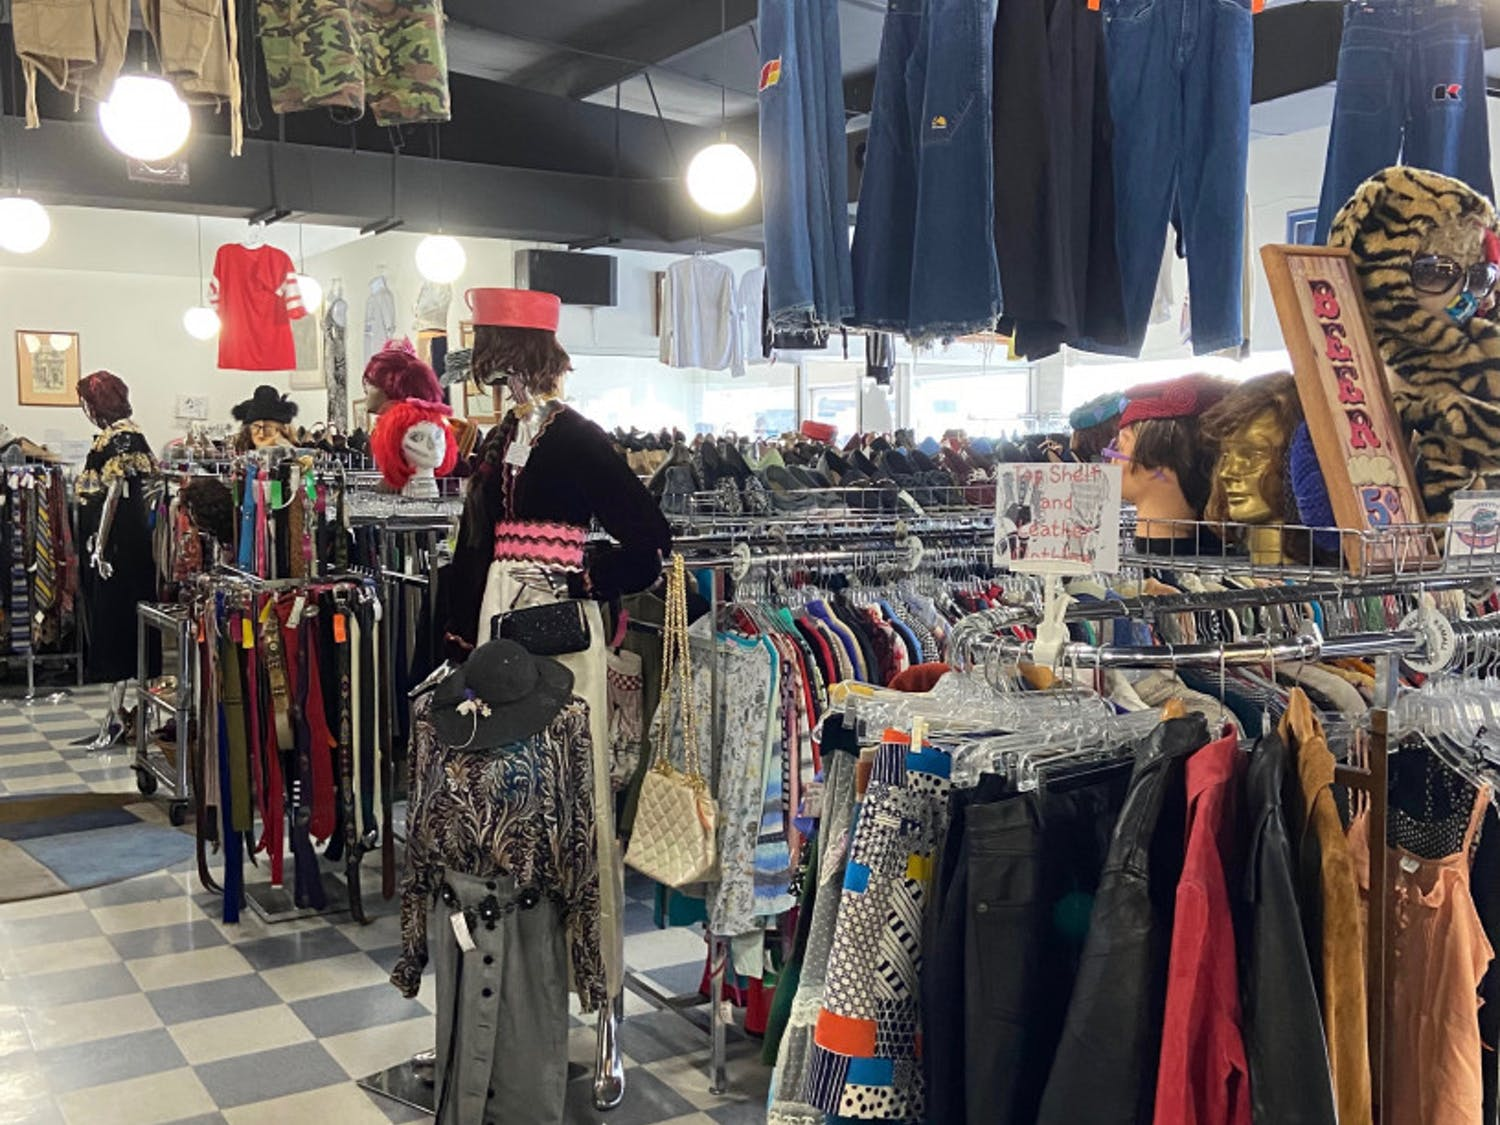 The Gainesville thrift store, Flashbacks Recycled Fashions, located at220 NW 8th Ave., has seen a surprising burst in customers wanting to expand their style following this year's COVID-19 pandemic shut downs.